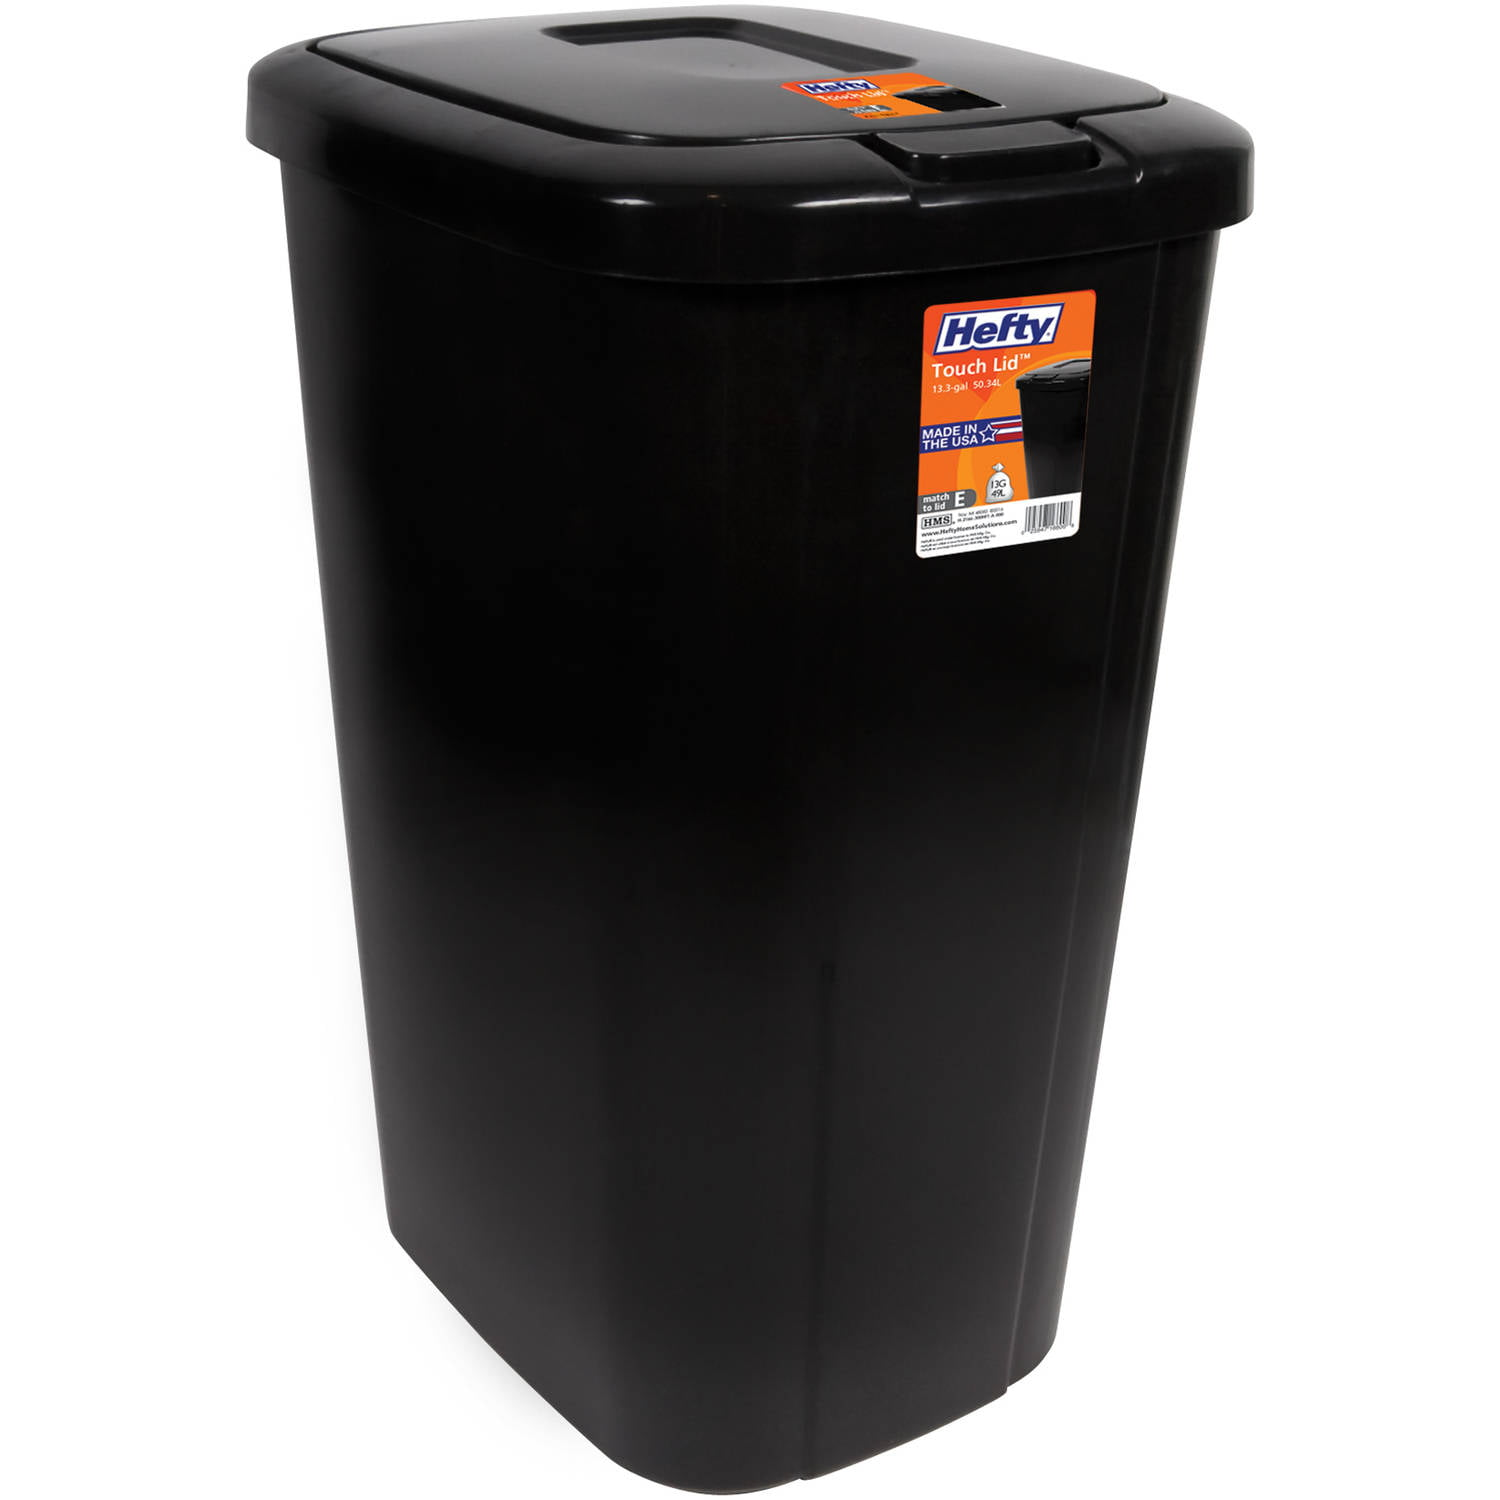 hefty touch lid 133 gallon trash can multiple colors walmartcom - Bathroom Trash Can With Lid